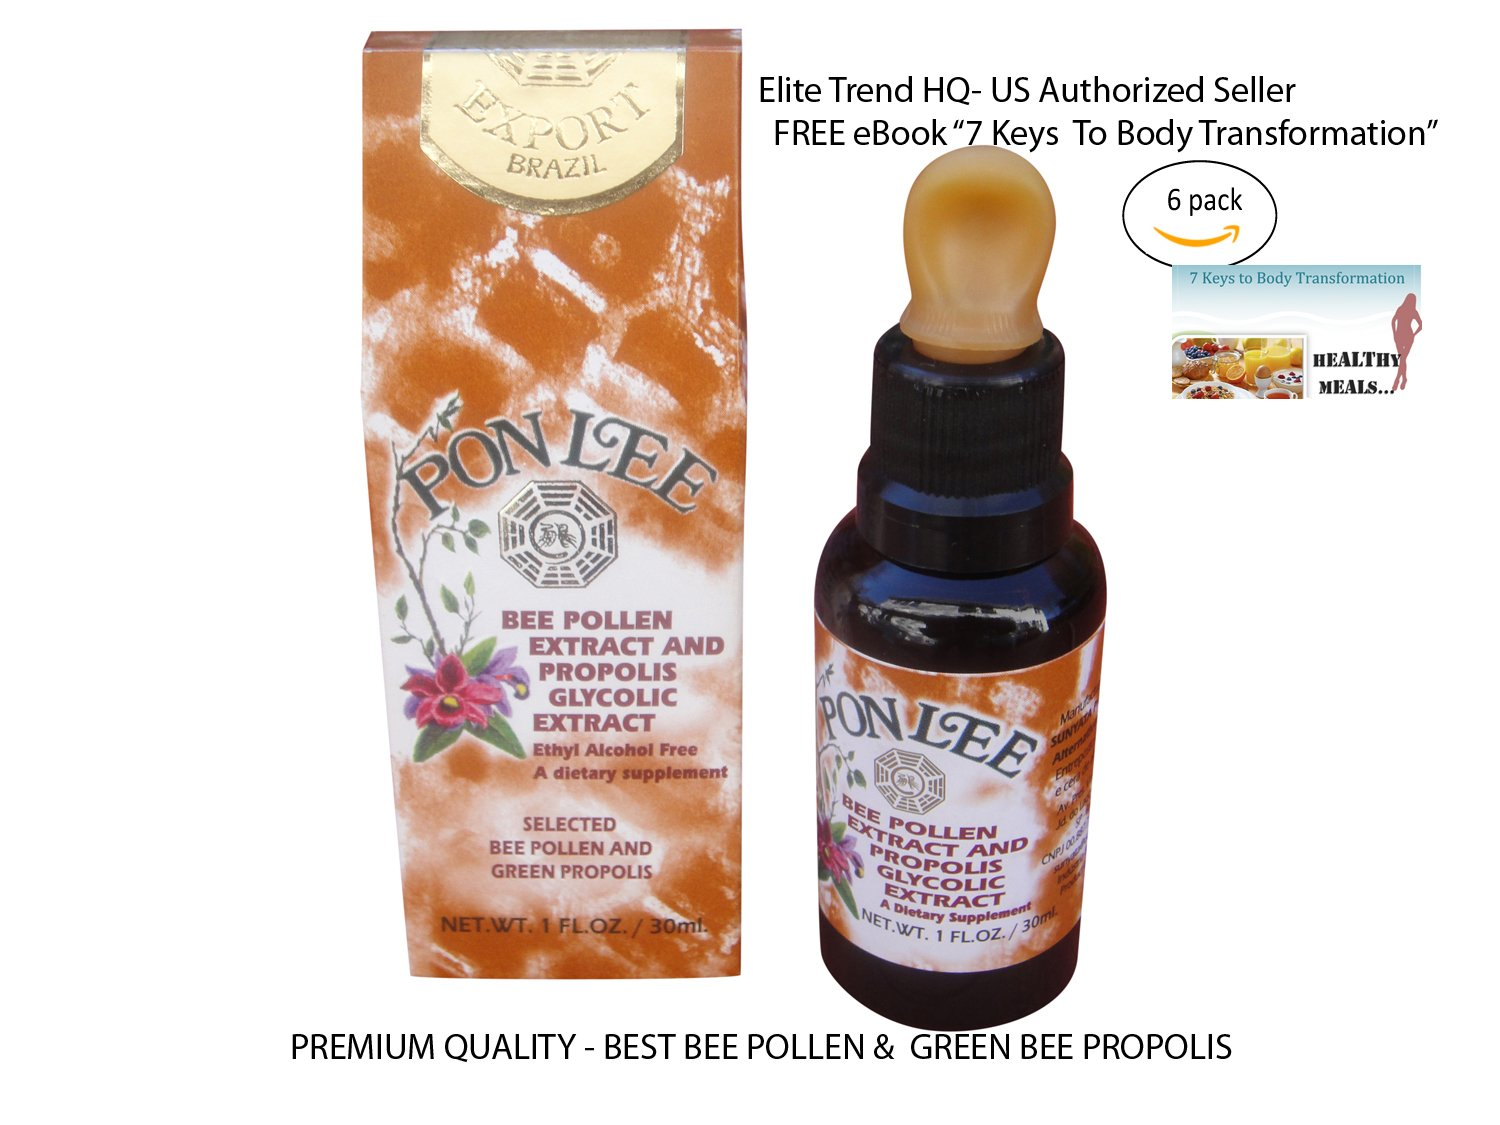 BRAZIL BEE POLLEN & GREEN BEE PROPOLIS EXTRACT-Ethyl Alcohol Free - BY PON LEE (6)